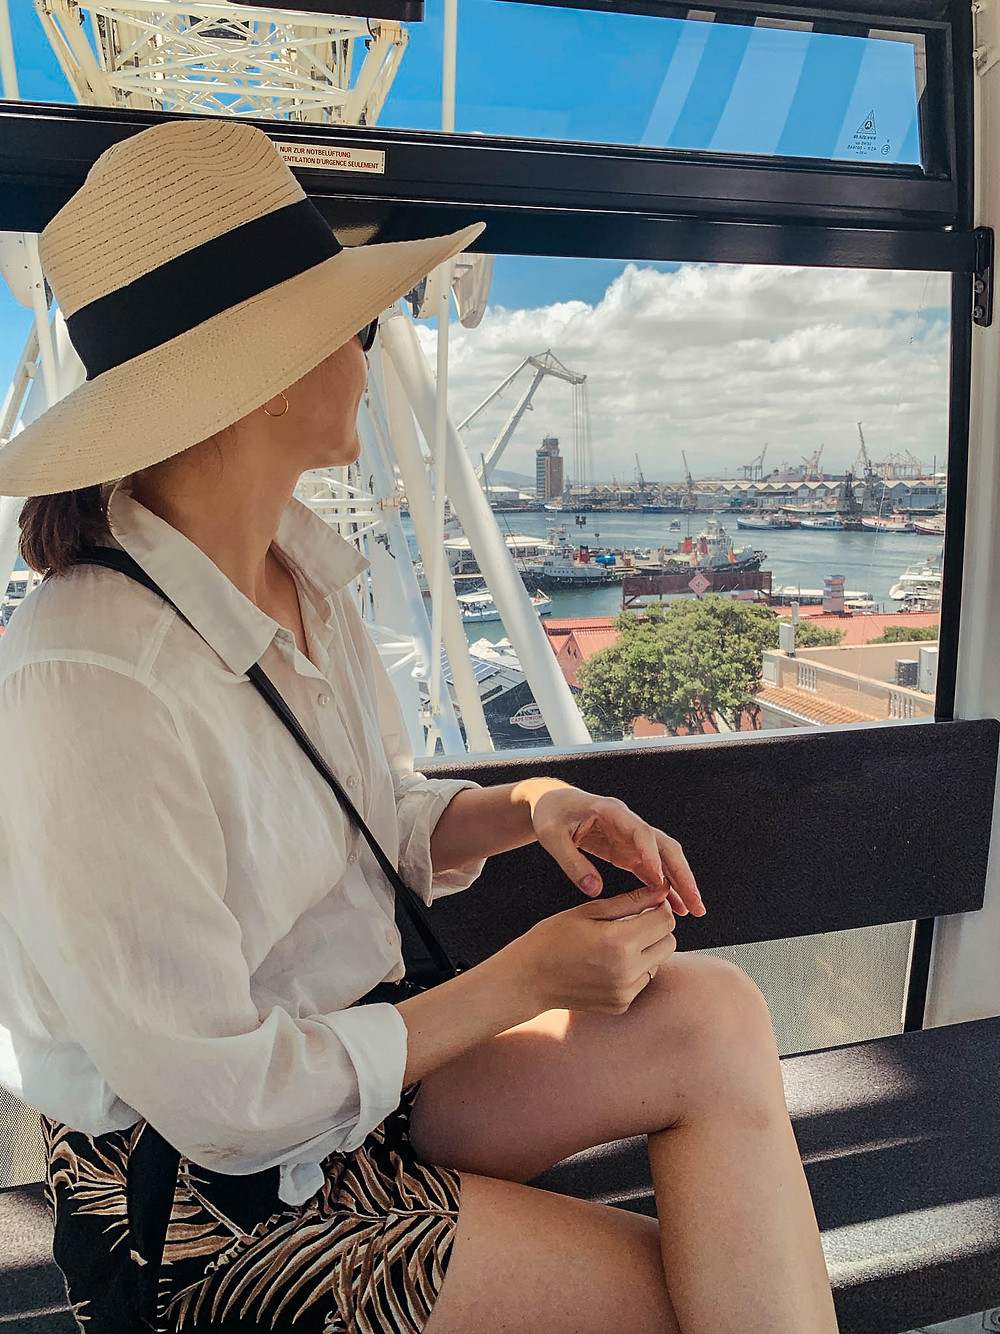 Riding the V&A Waterfront ferris wheel - another childhood throw-back